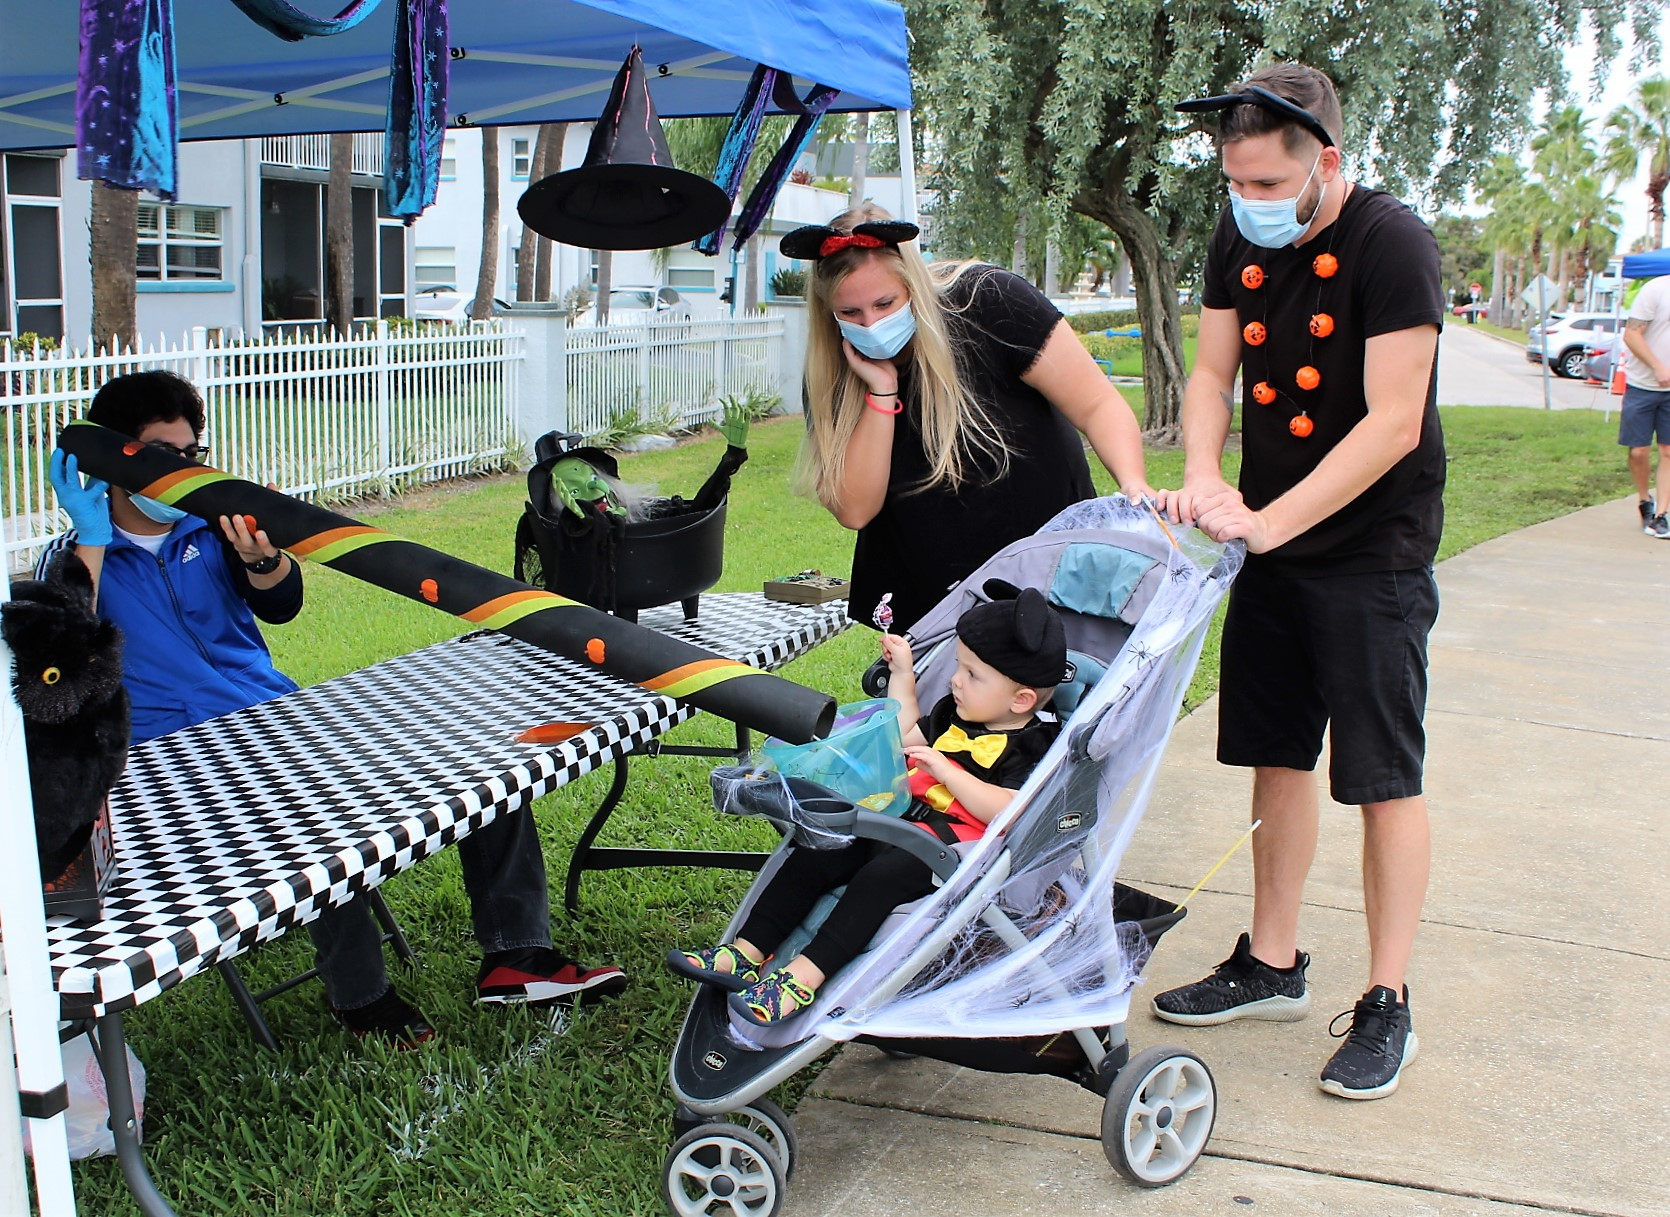 A mand and a women dressed in black with face masks and a small child in a blue stroller at a Halloween booth.